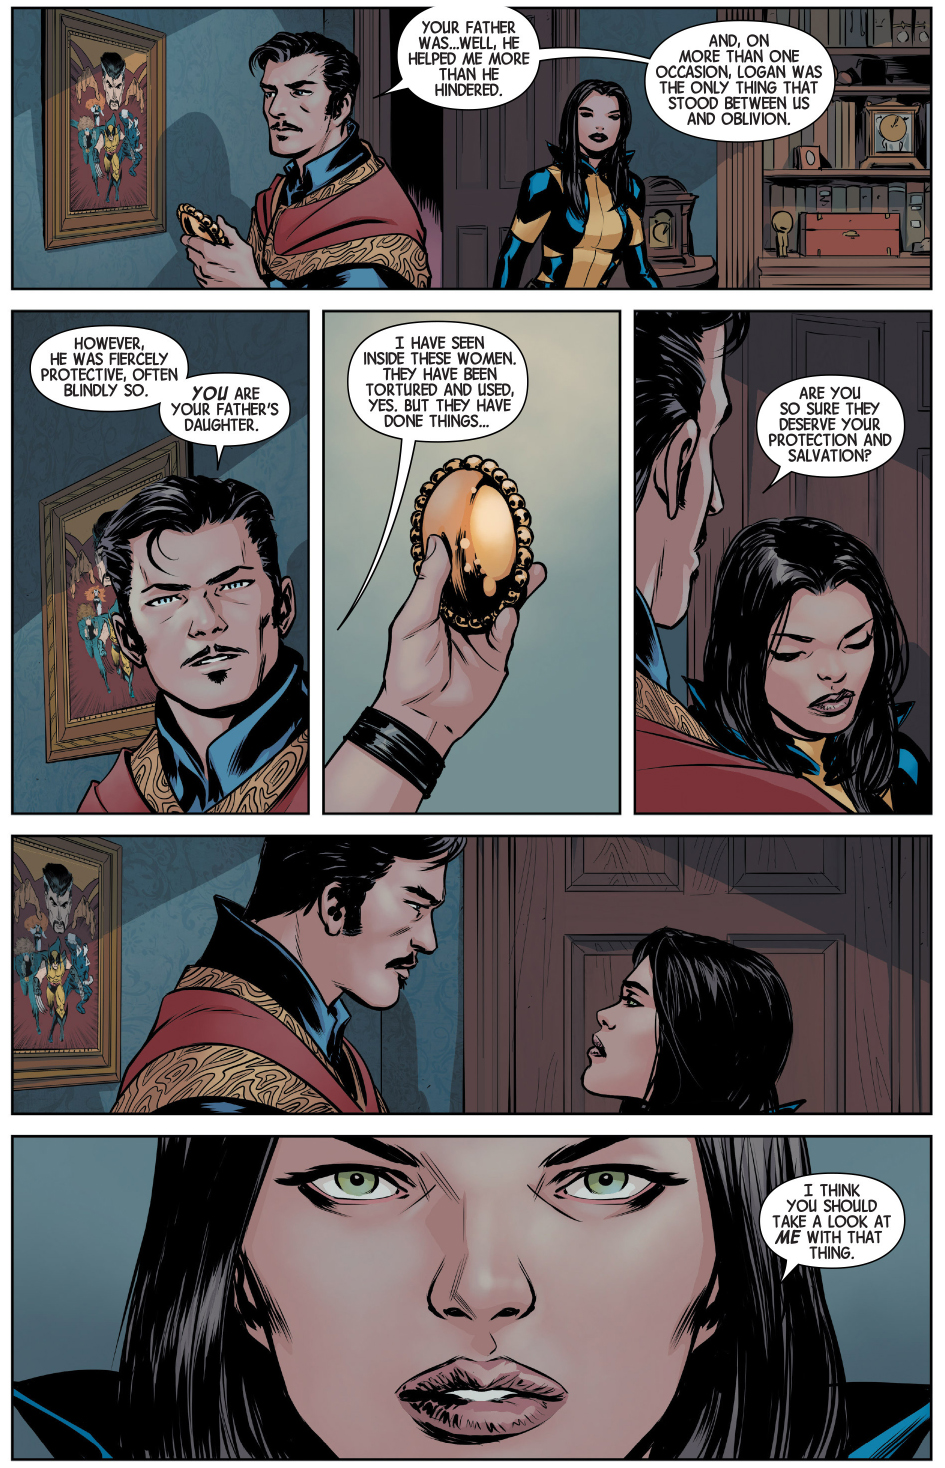 doctor strange scans wolverine with the eye of agamotto